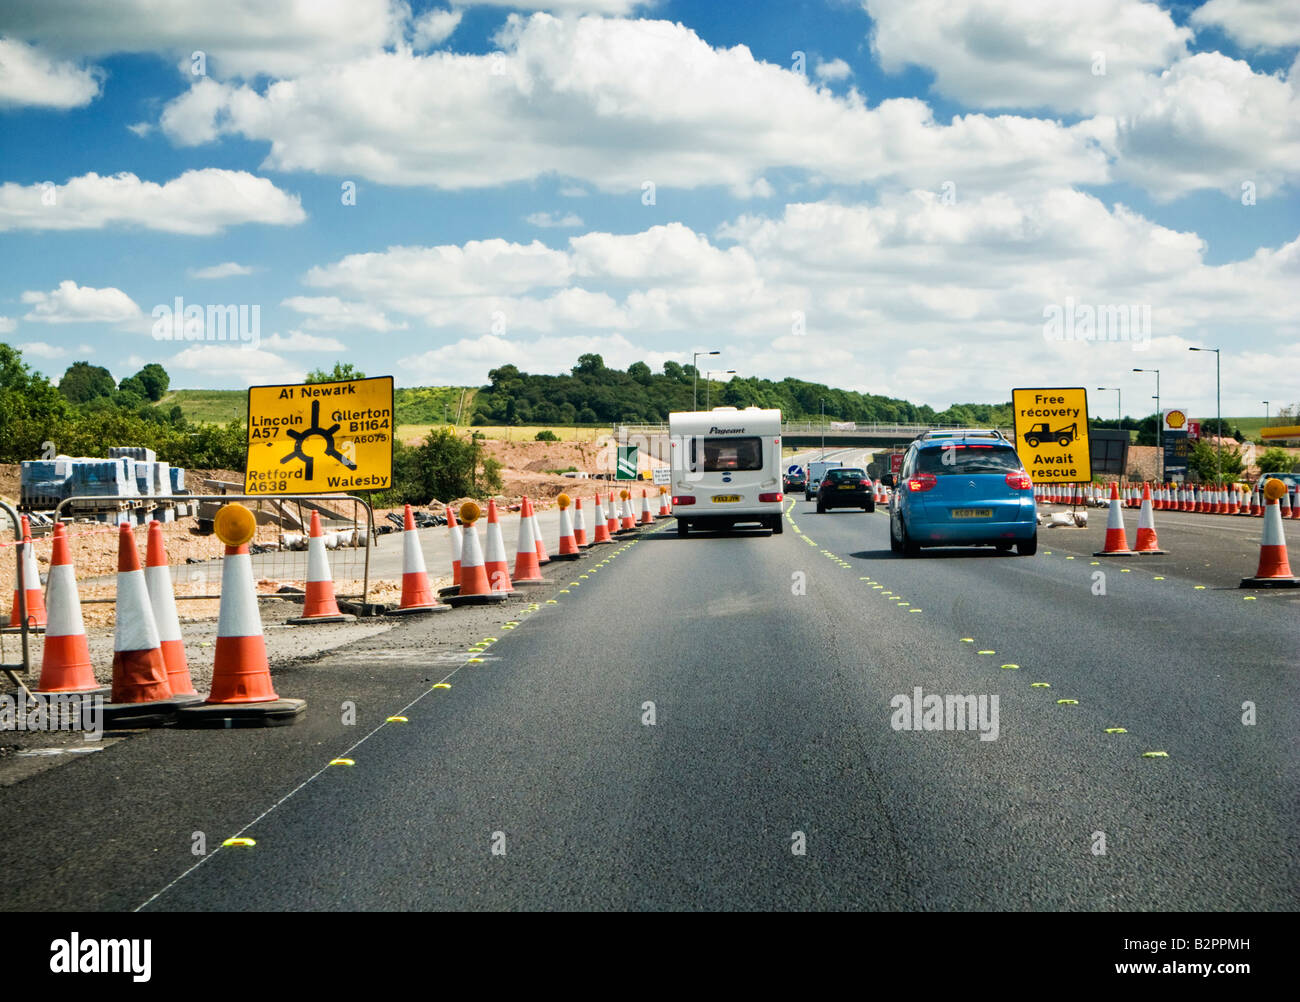 Holiday traffic in roadworks in summer, UK - Stock Image